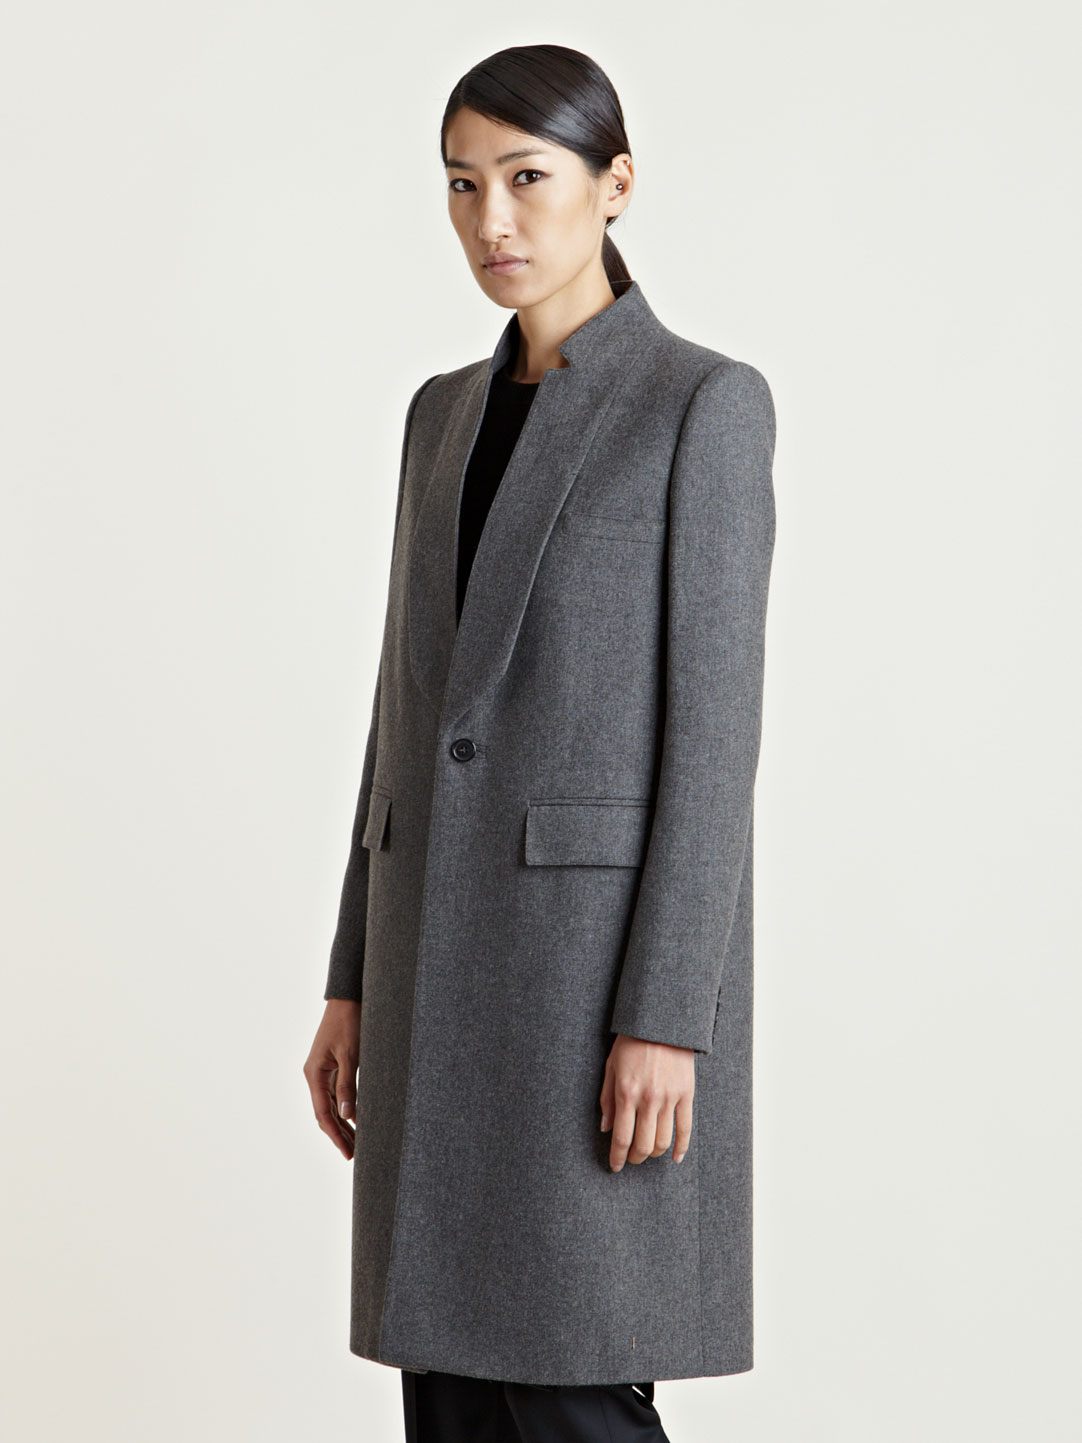 Shop Dillard's collection of women's wool and wool blend coats, sure to keep you warm all season.4/4(1).